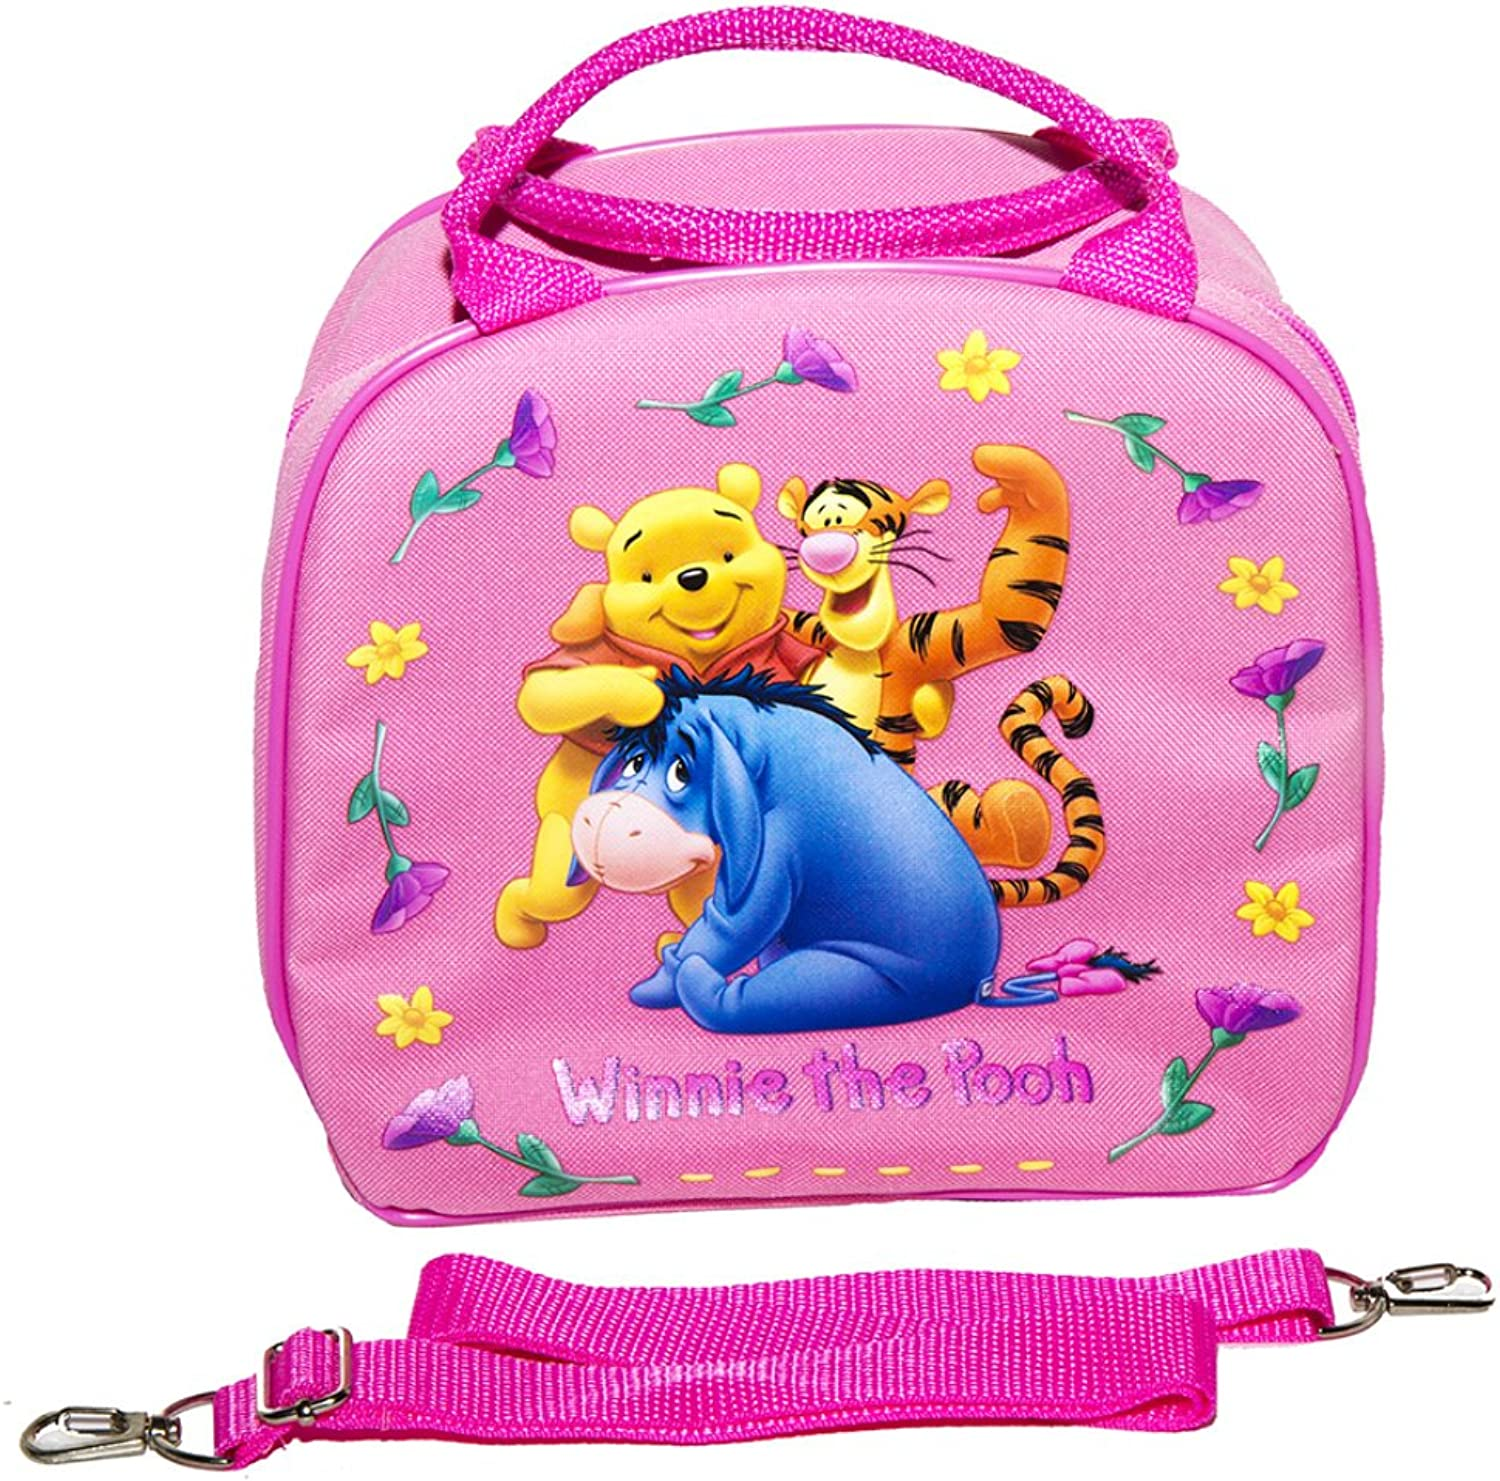 Disney Winnie the Pooh Lunch Box with Water Bottle Pink